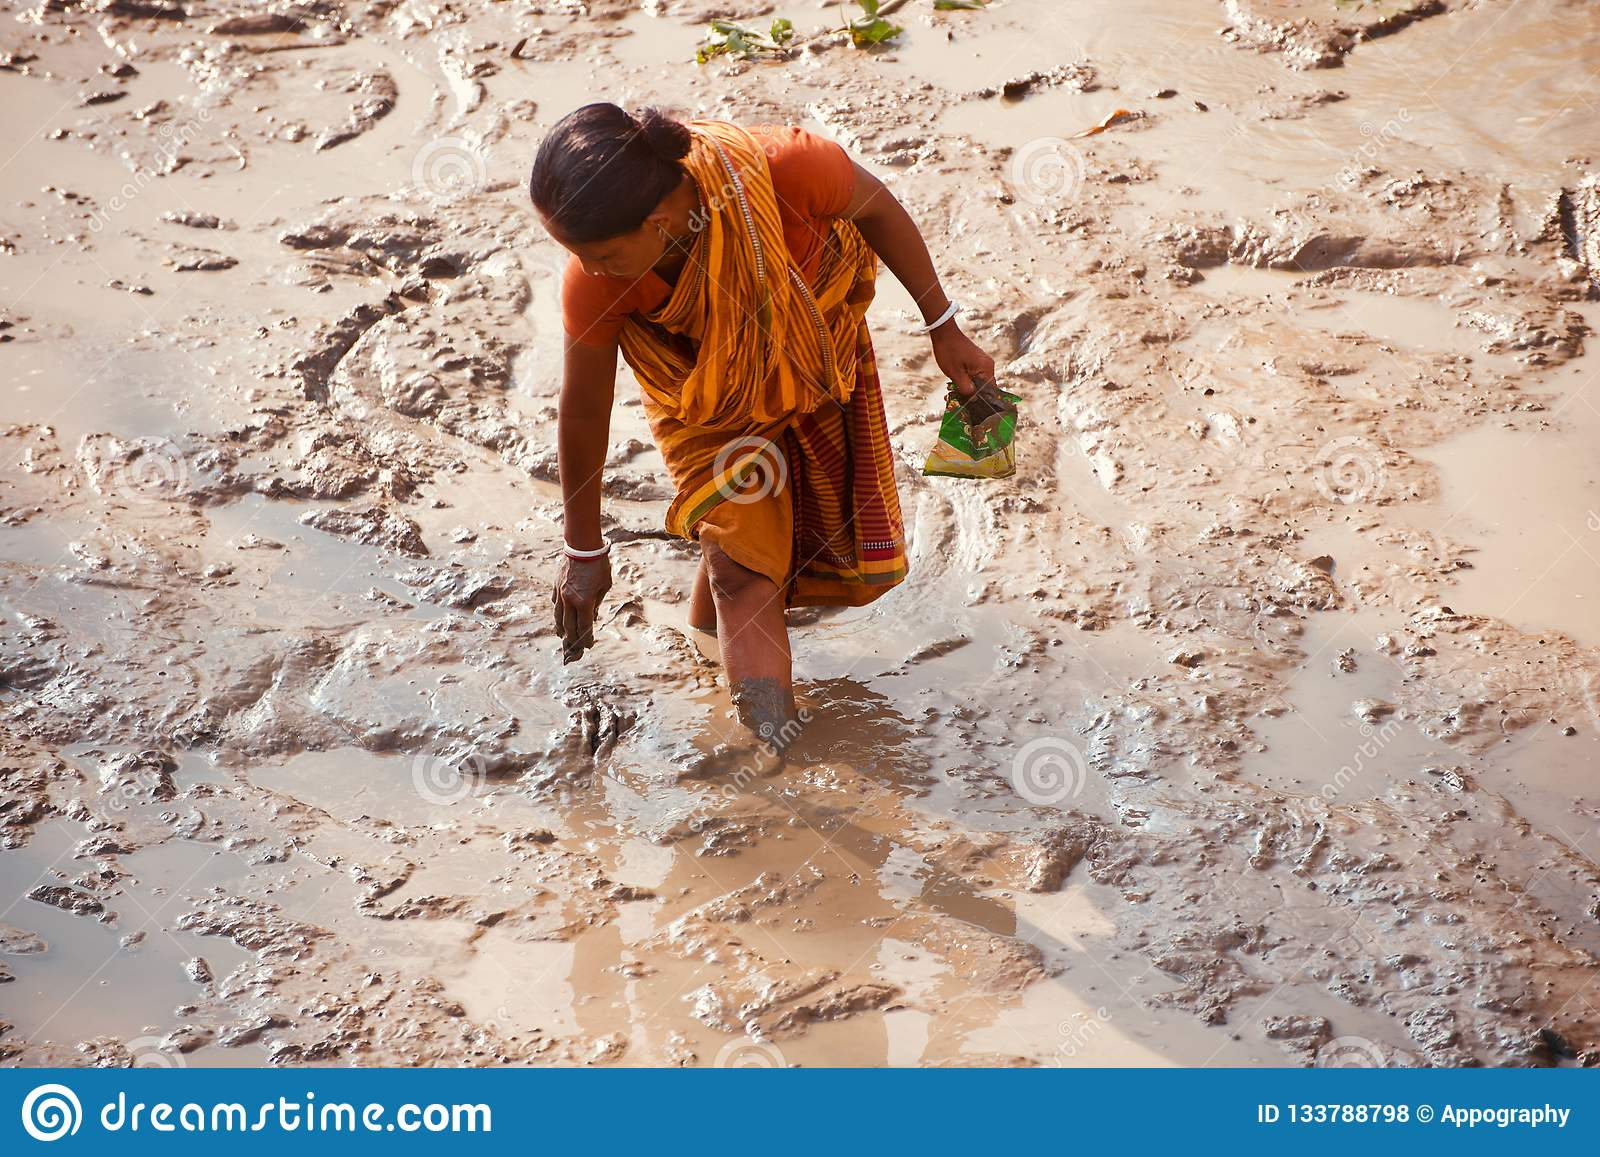 Poor woman fishing around a muddy place